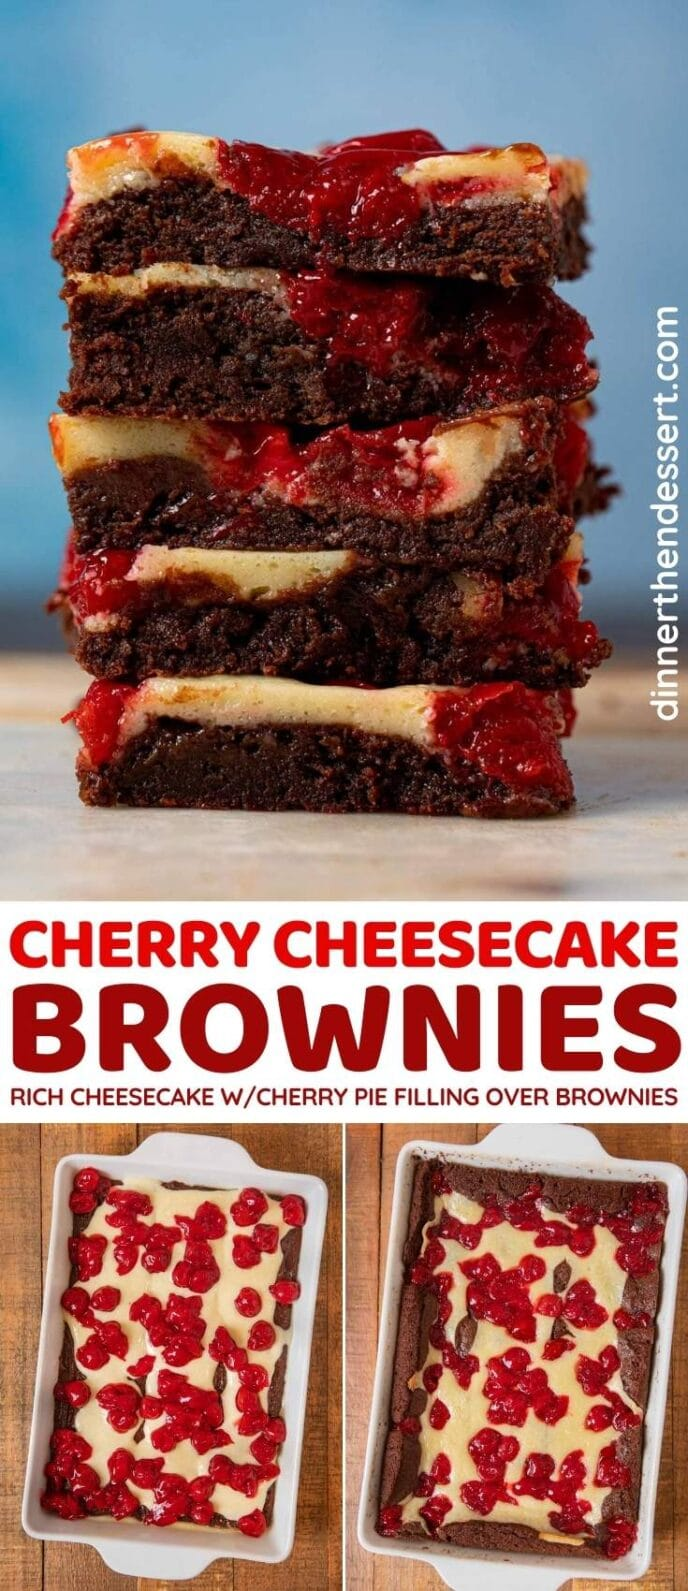 Cherry Cheesecake Brownies collage